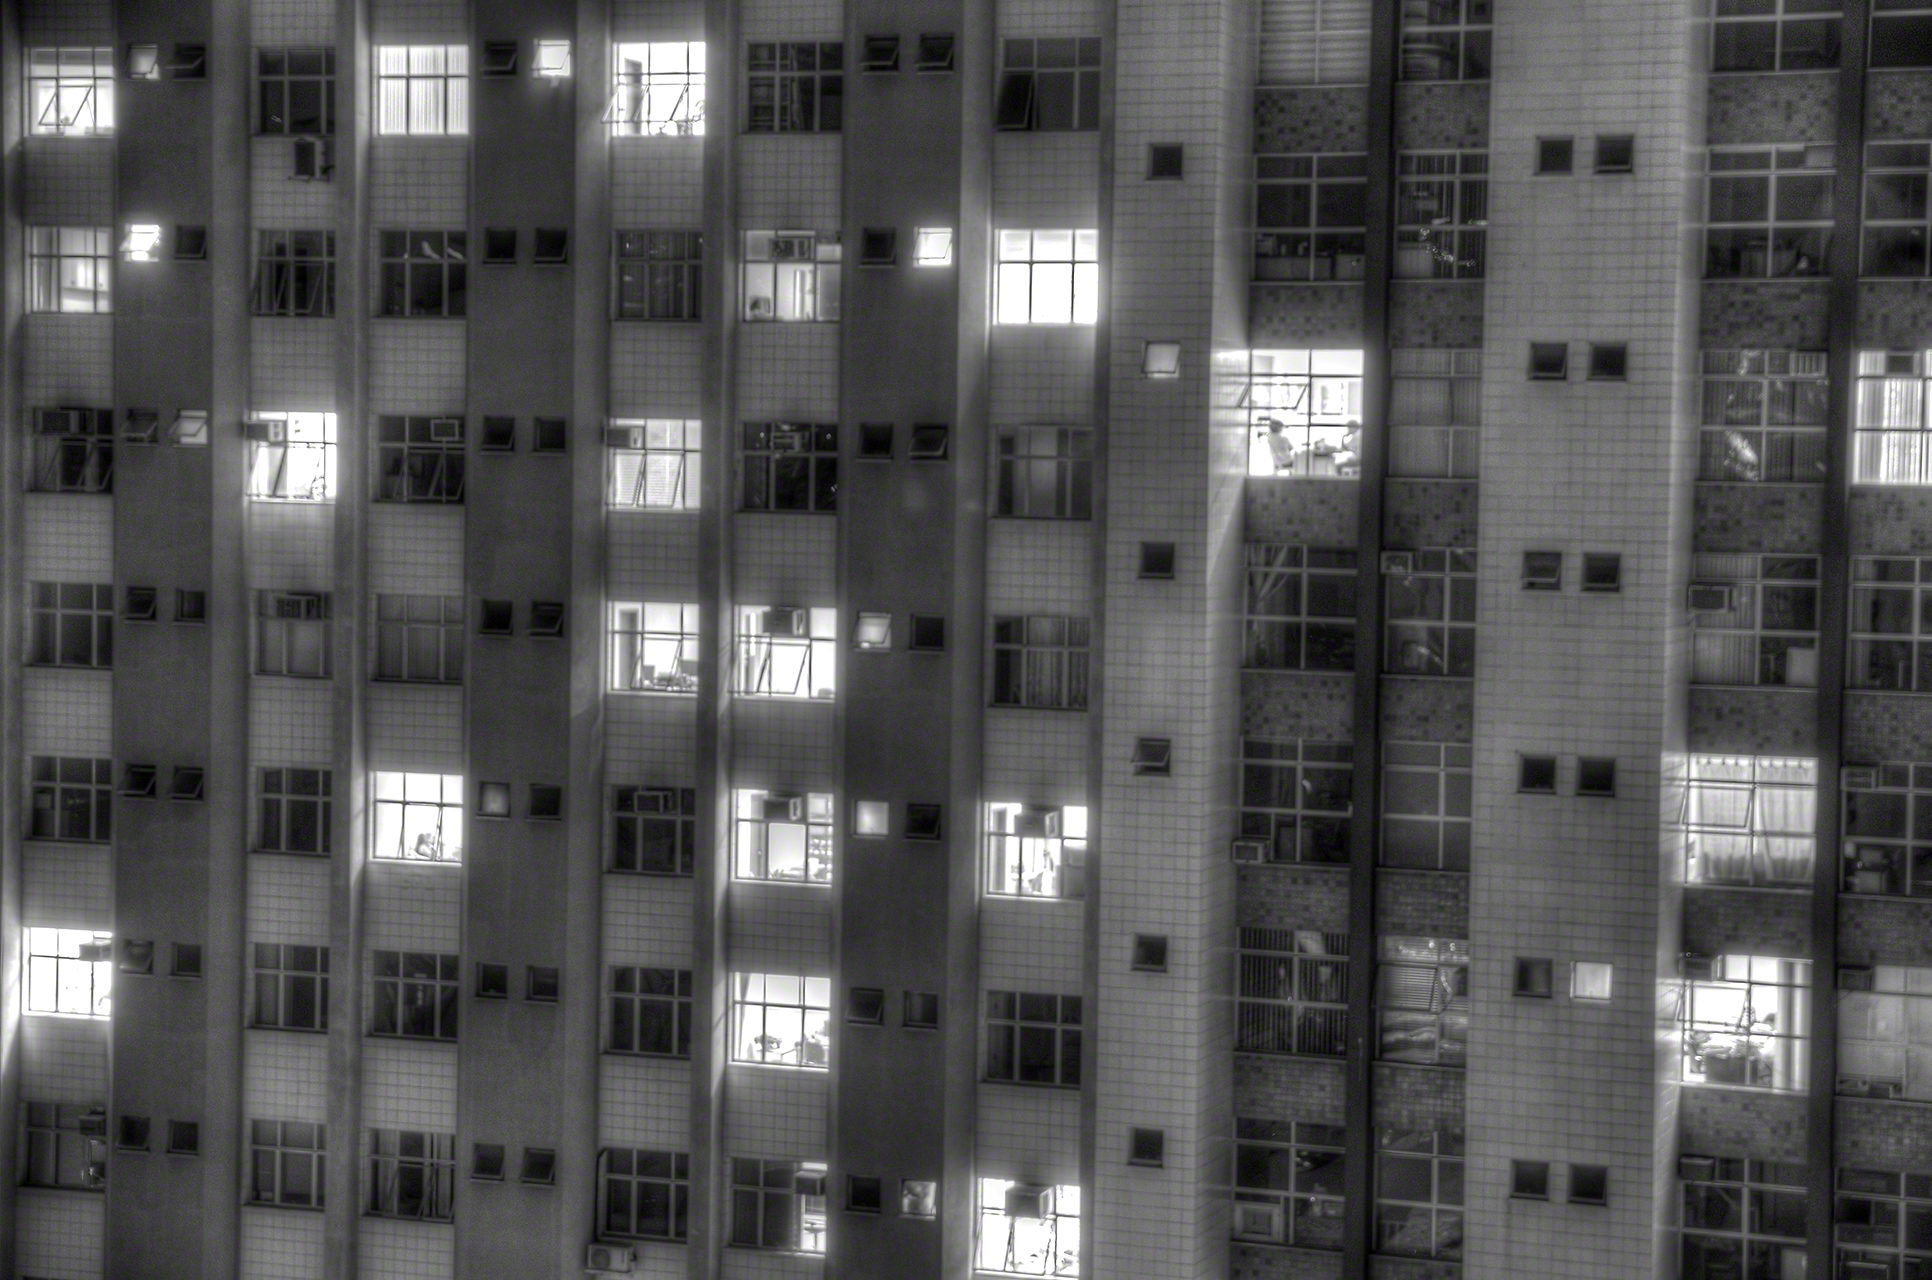 Apartment complex at night, Belo Hoizonte, Brazil